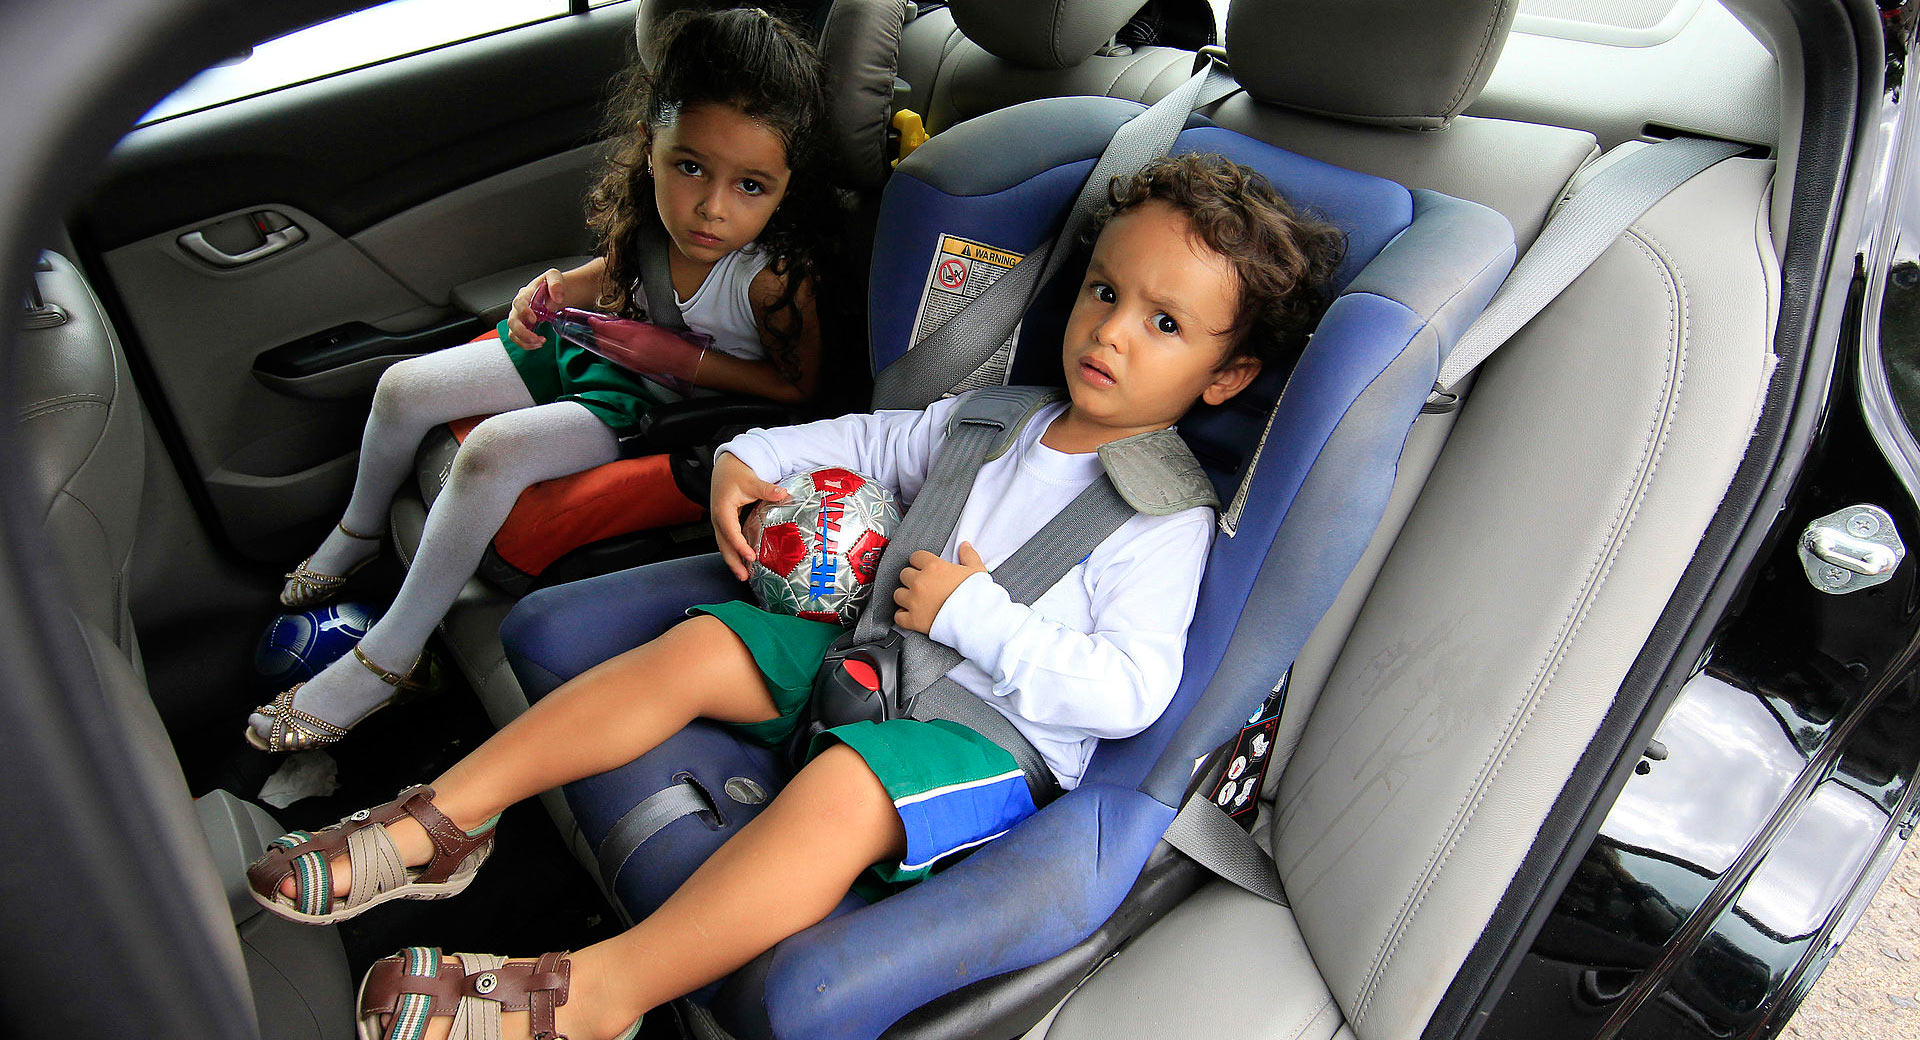 Baby Car Seats At Target Target Gives 20 Per Cent Discount Voucher For Trading In Old